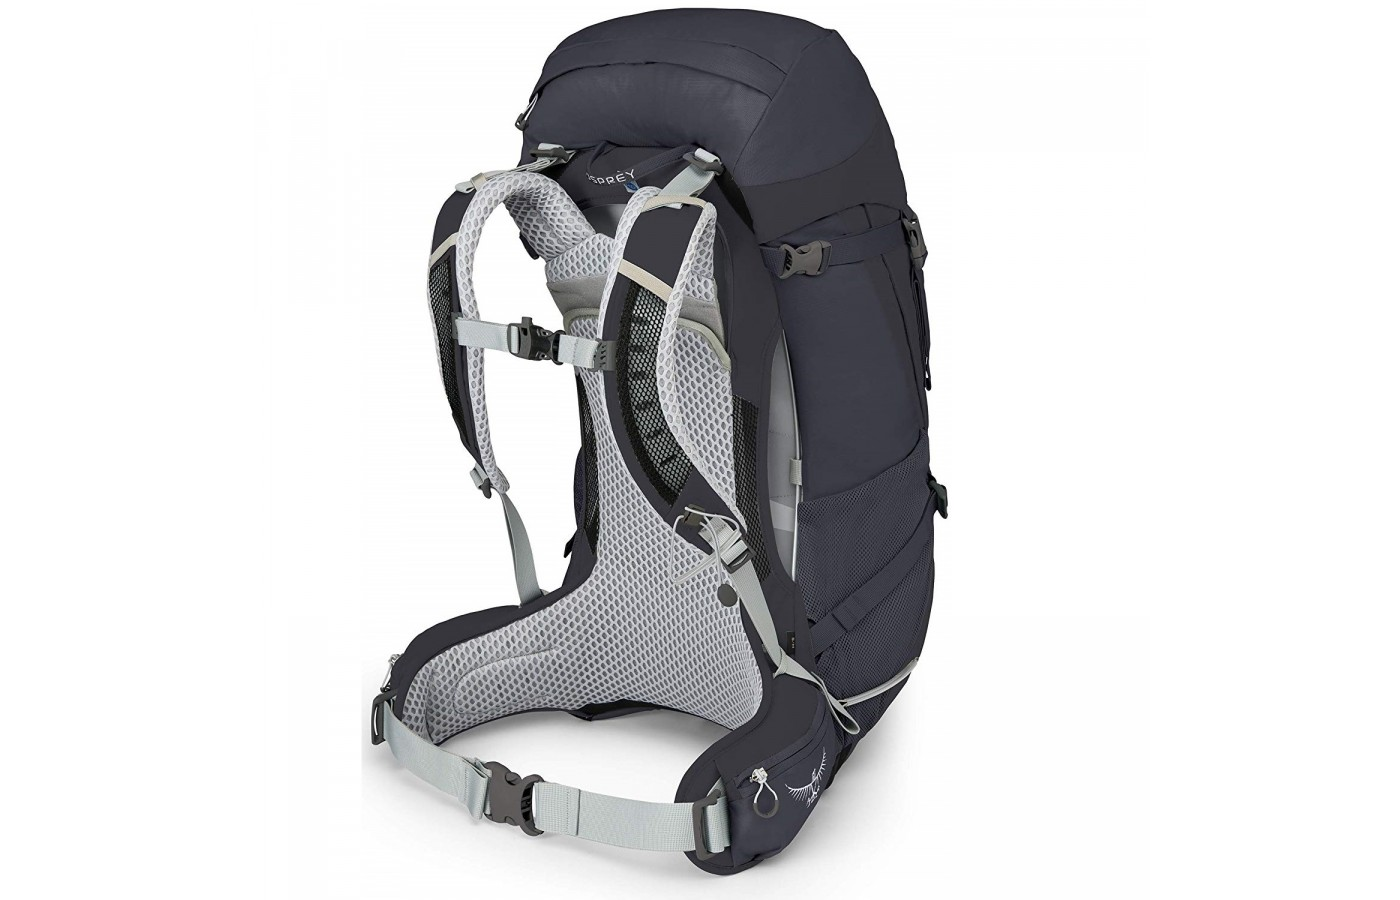 The Osprey Sirrus 50 offers full padded suspension system for support and weight distribution.